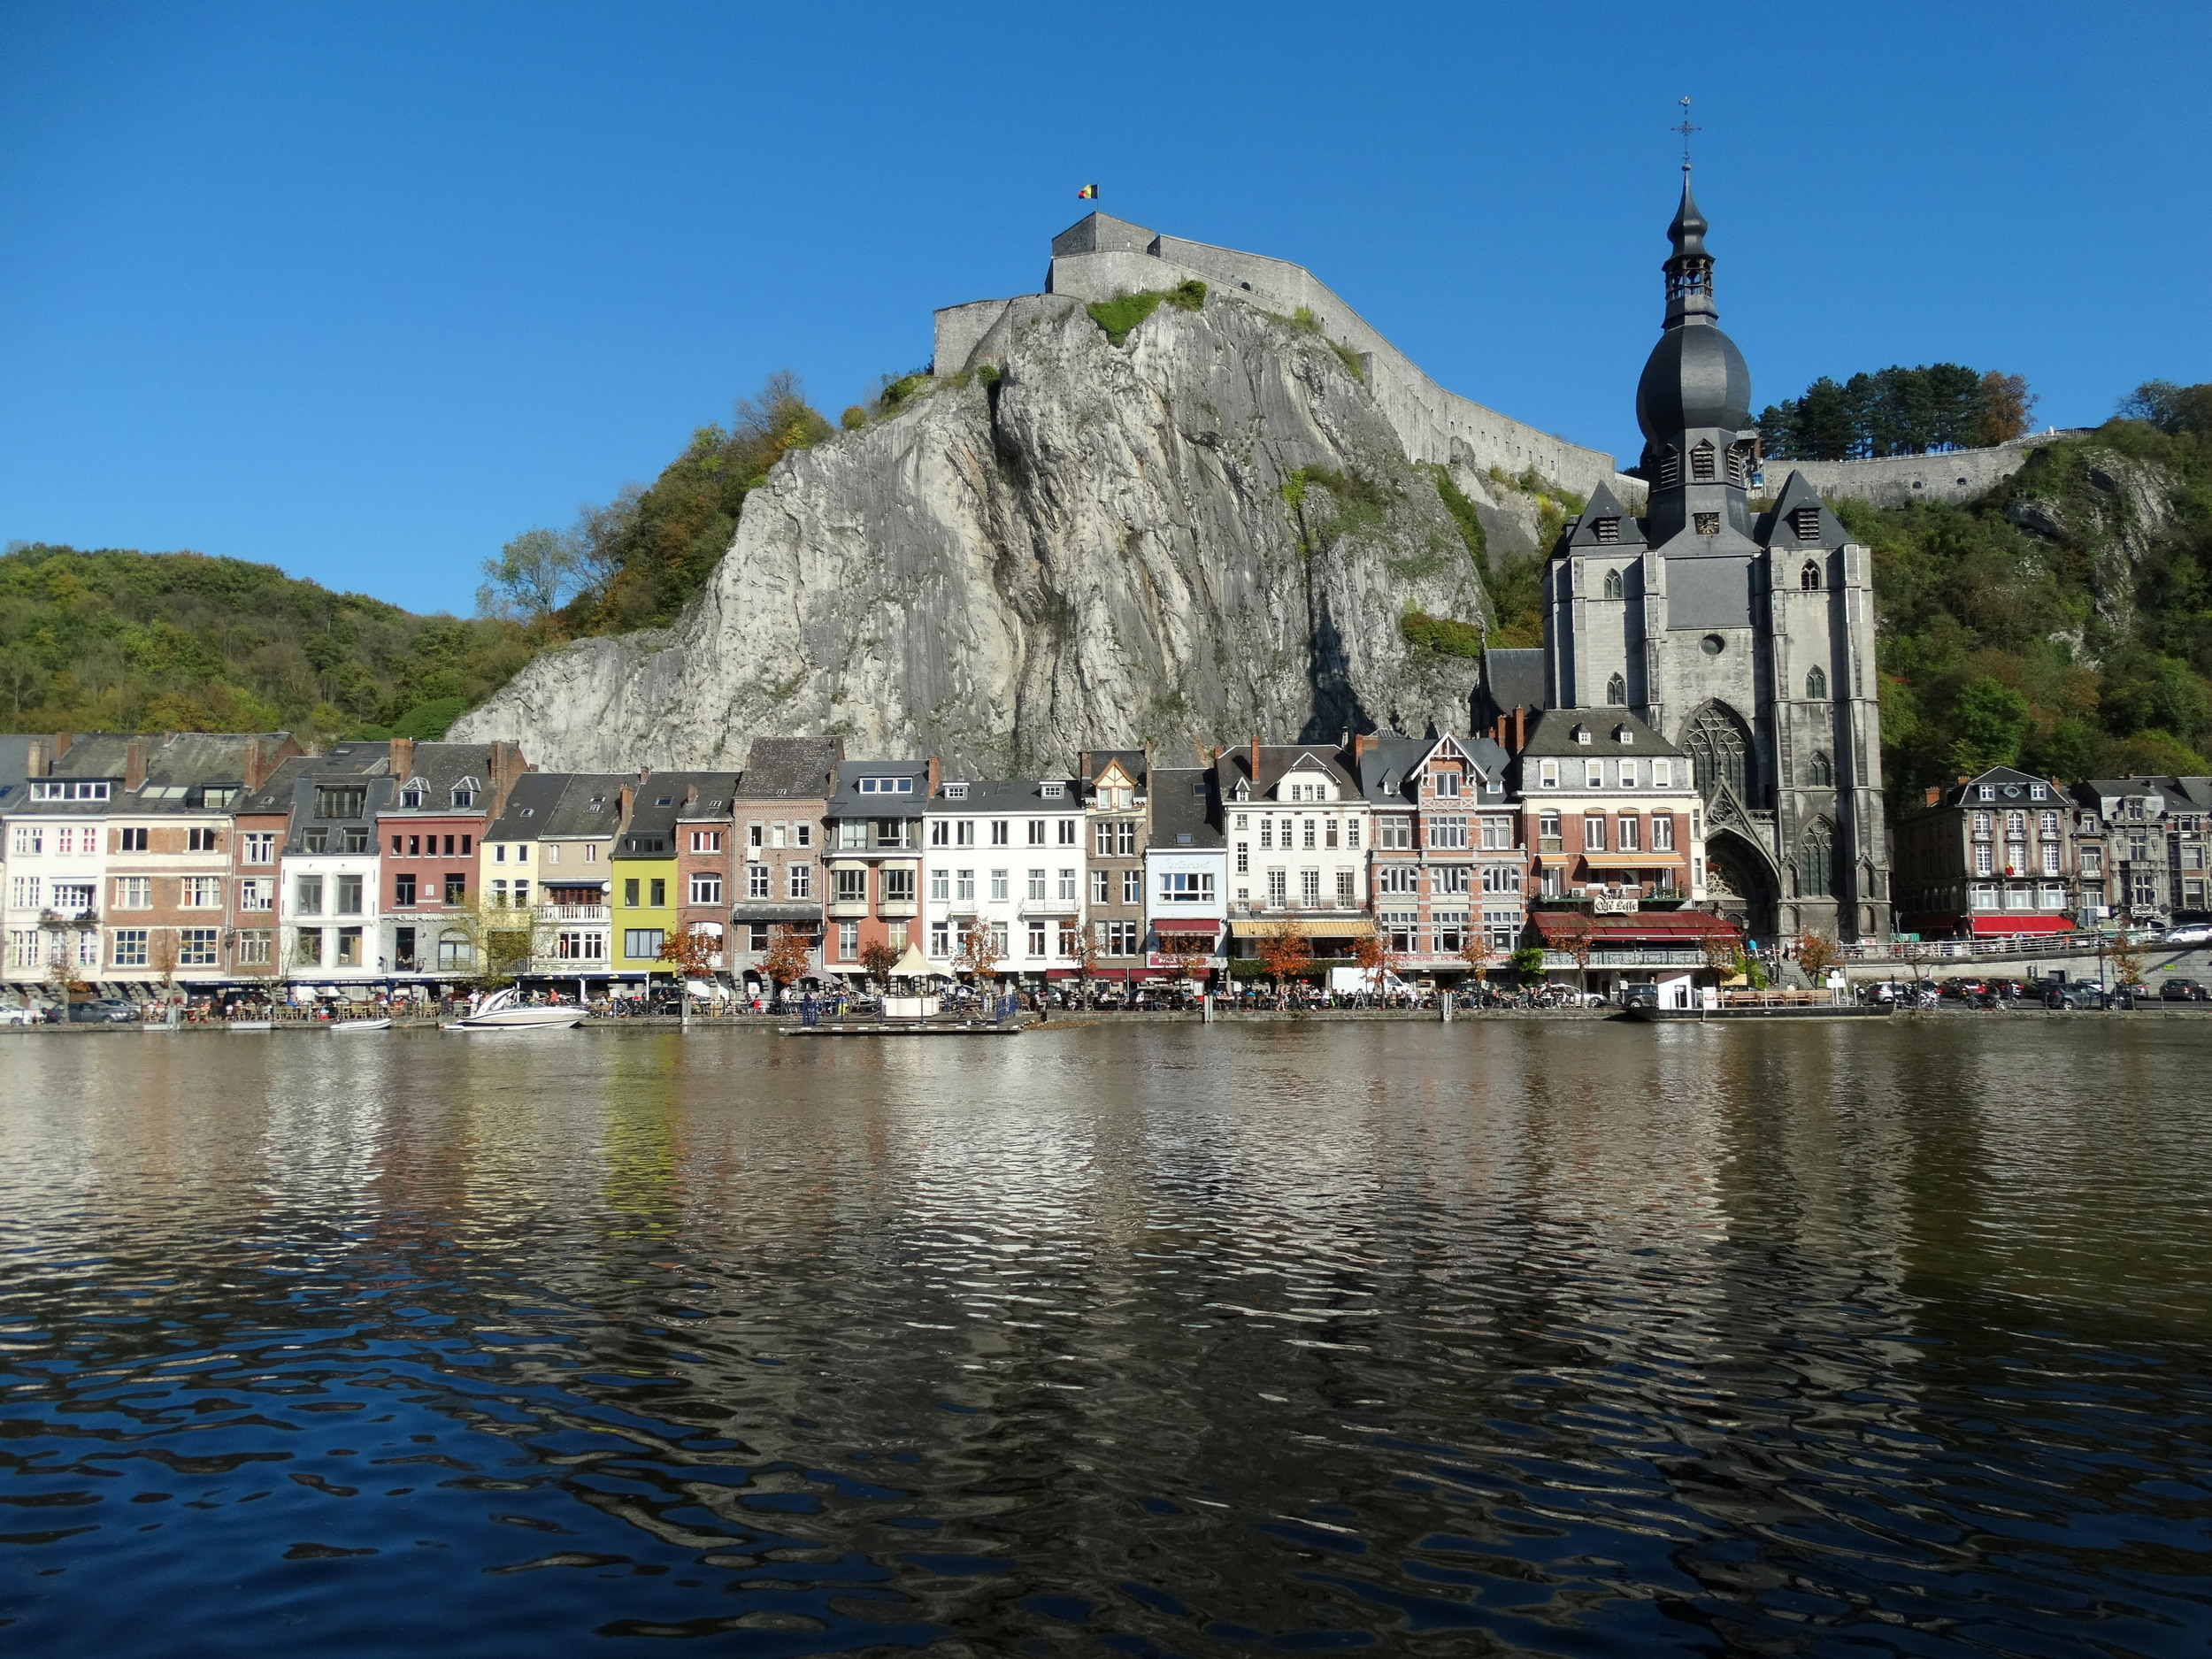 Dinant showing off